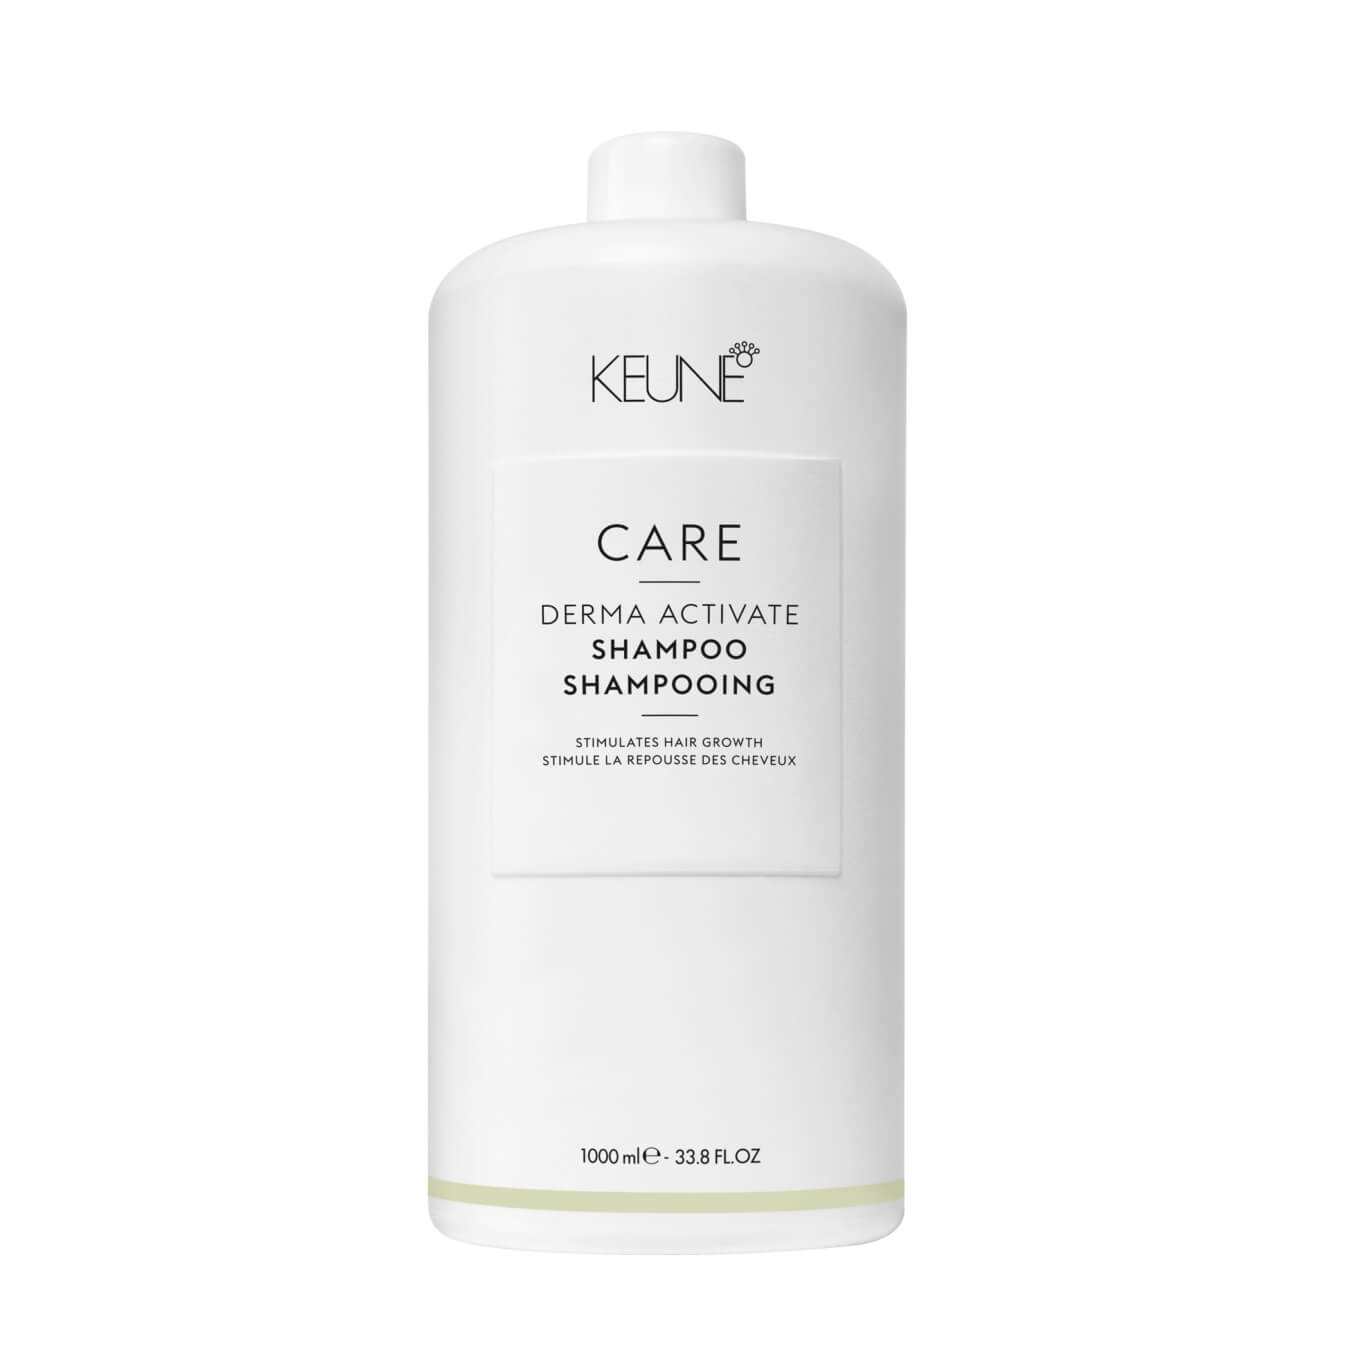 Kauf Keune Care Derma Activate Shampoo 1000ml